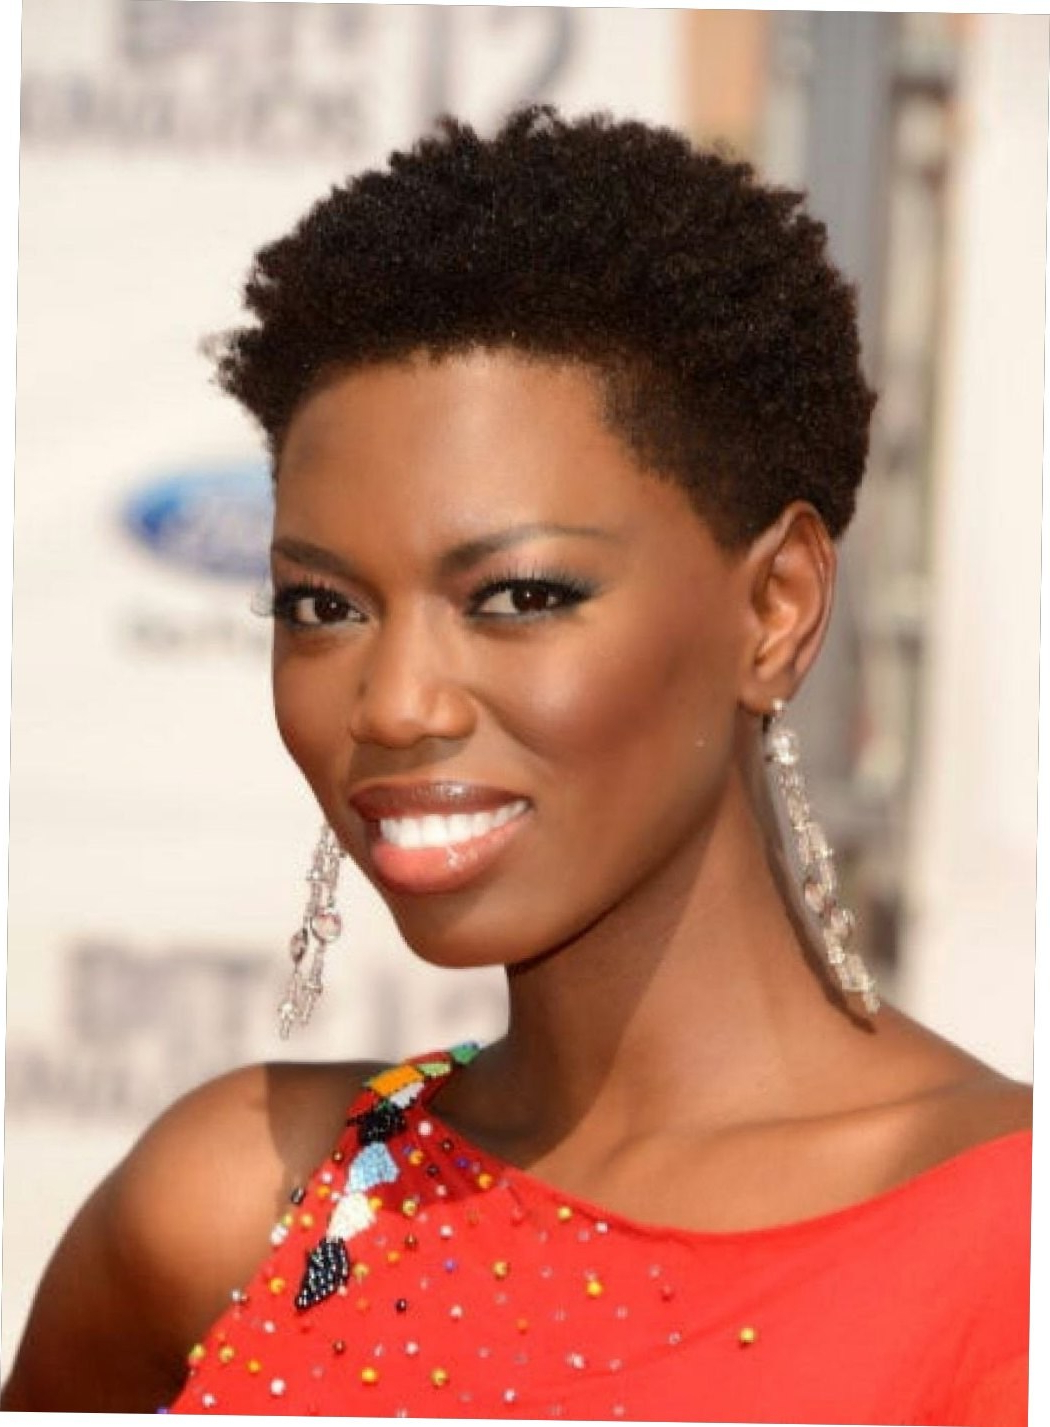 Short Hairstyle For Black Womens | Short Black Hairstyle African Inside Black Women Natural Short Hairstyles (View 18 of 25)